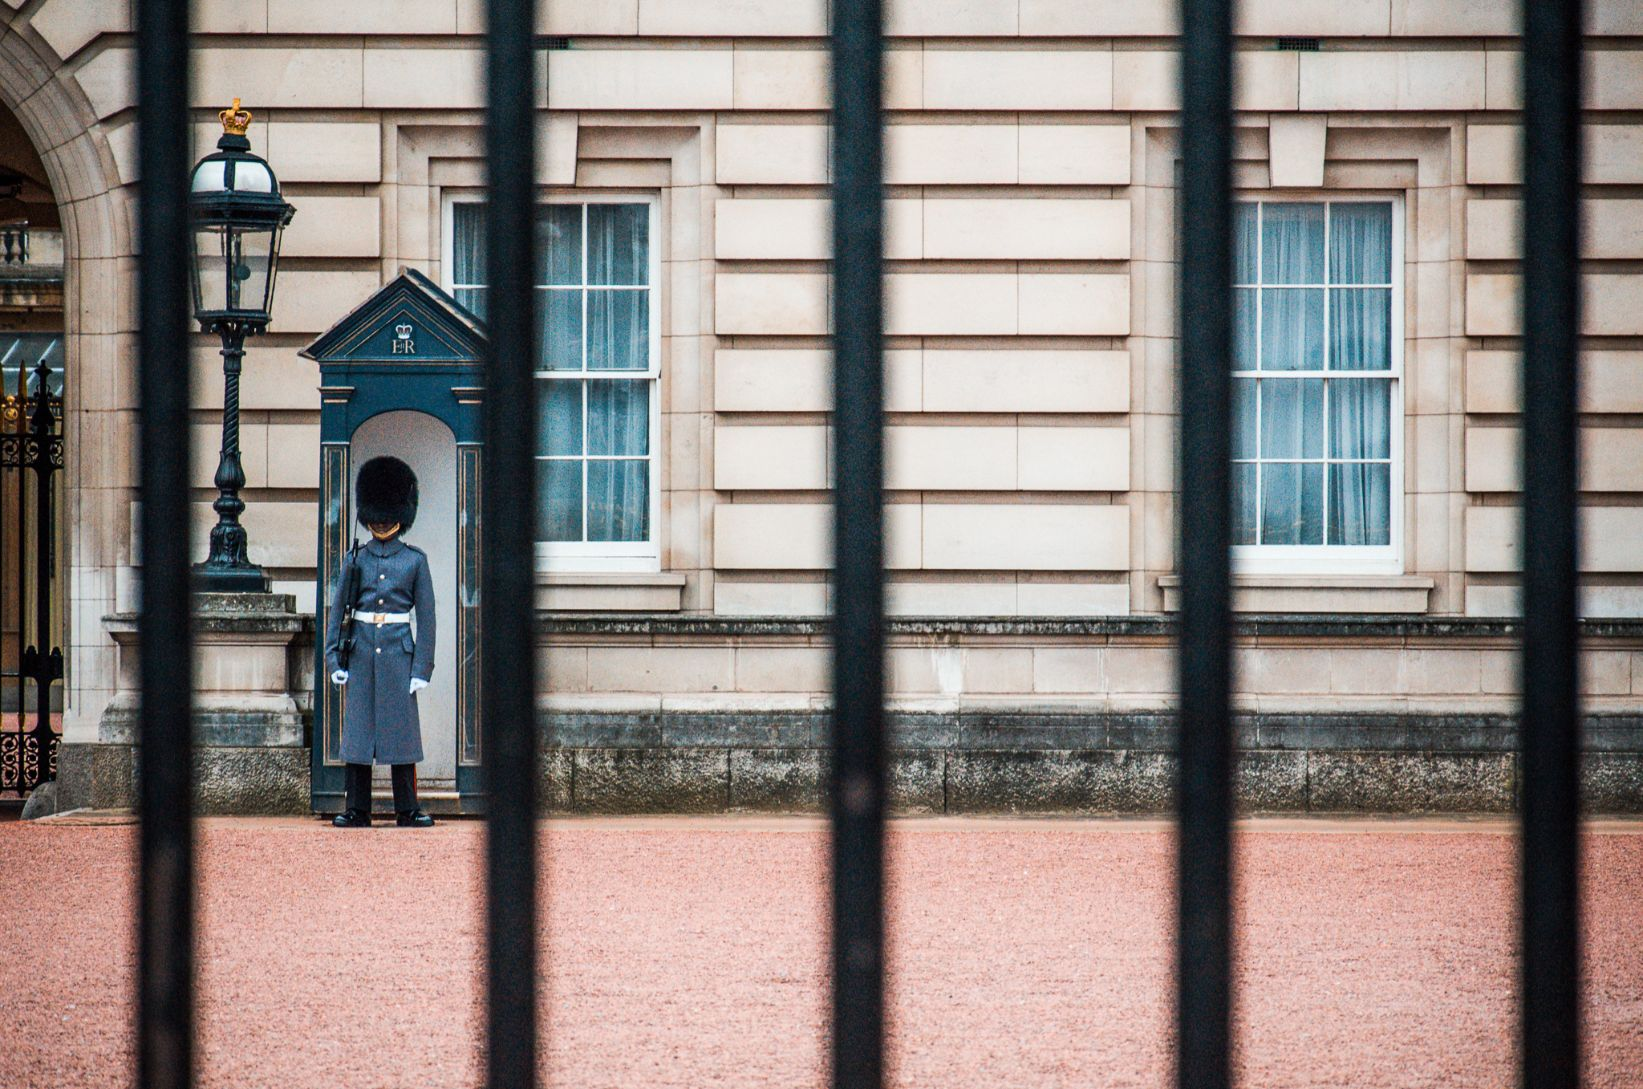 Guard standing outside of Buckingham Palace in London, England